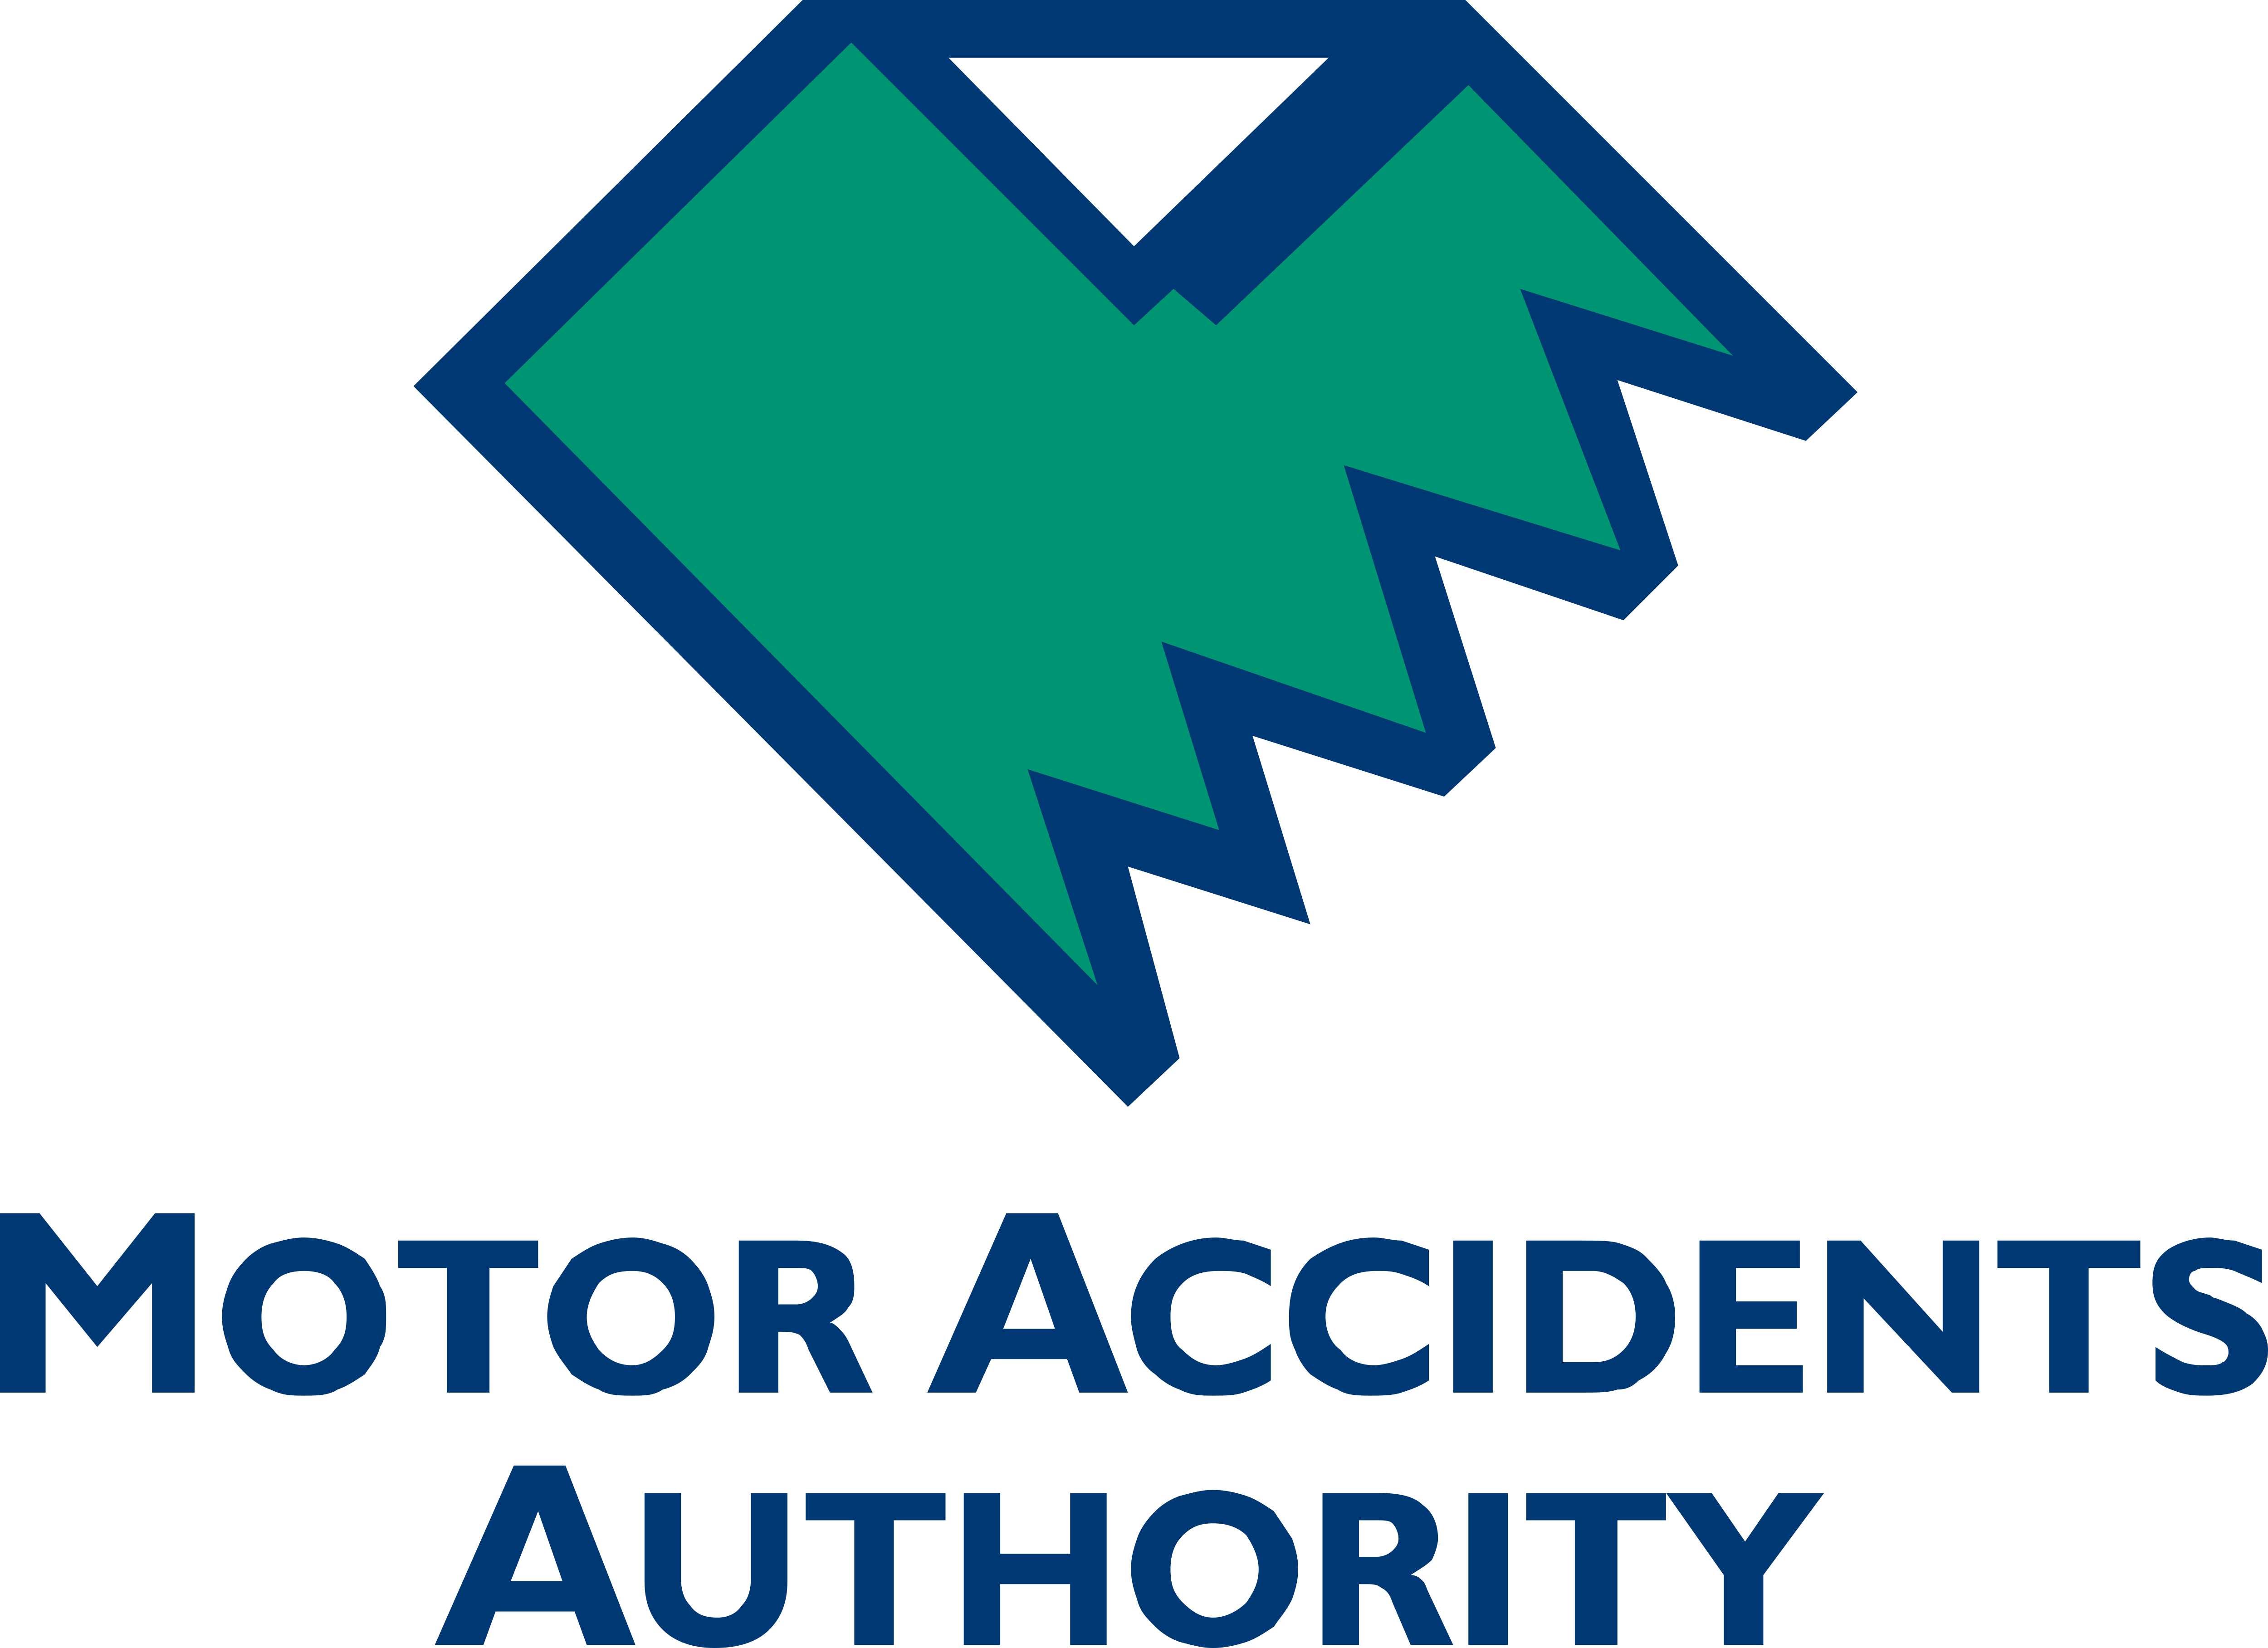 Motor Accidents Authority - Logos Download